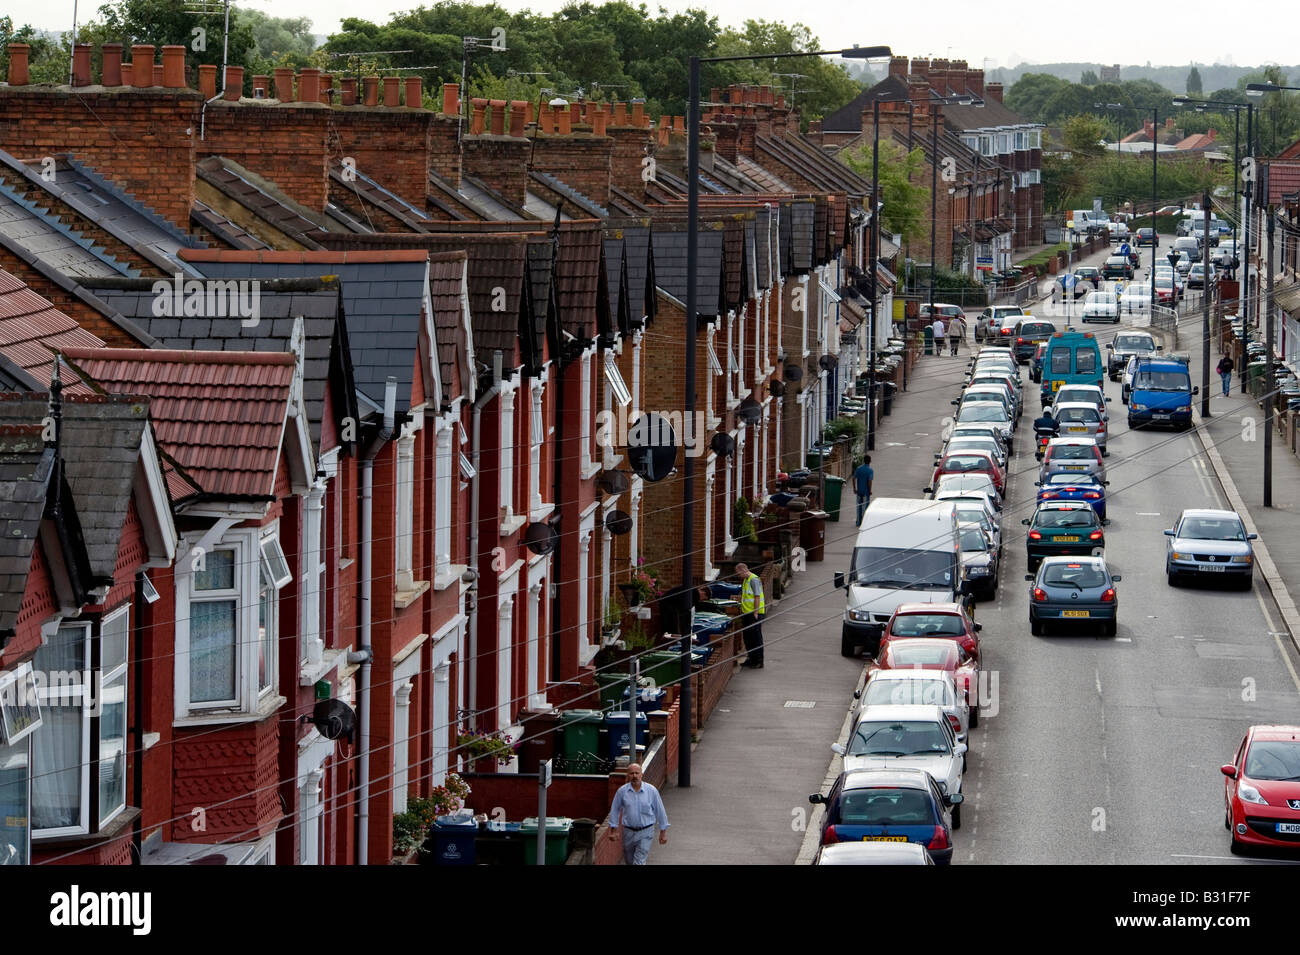 A row of terraced houses in a typical street in the London suburb of Harrow - Stock Image